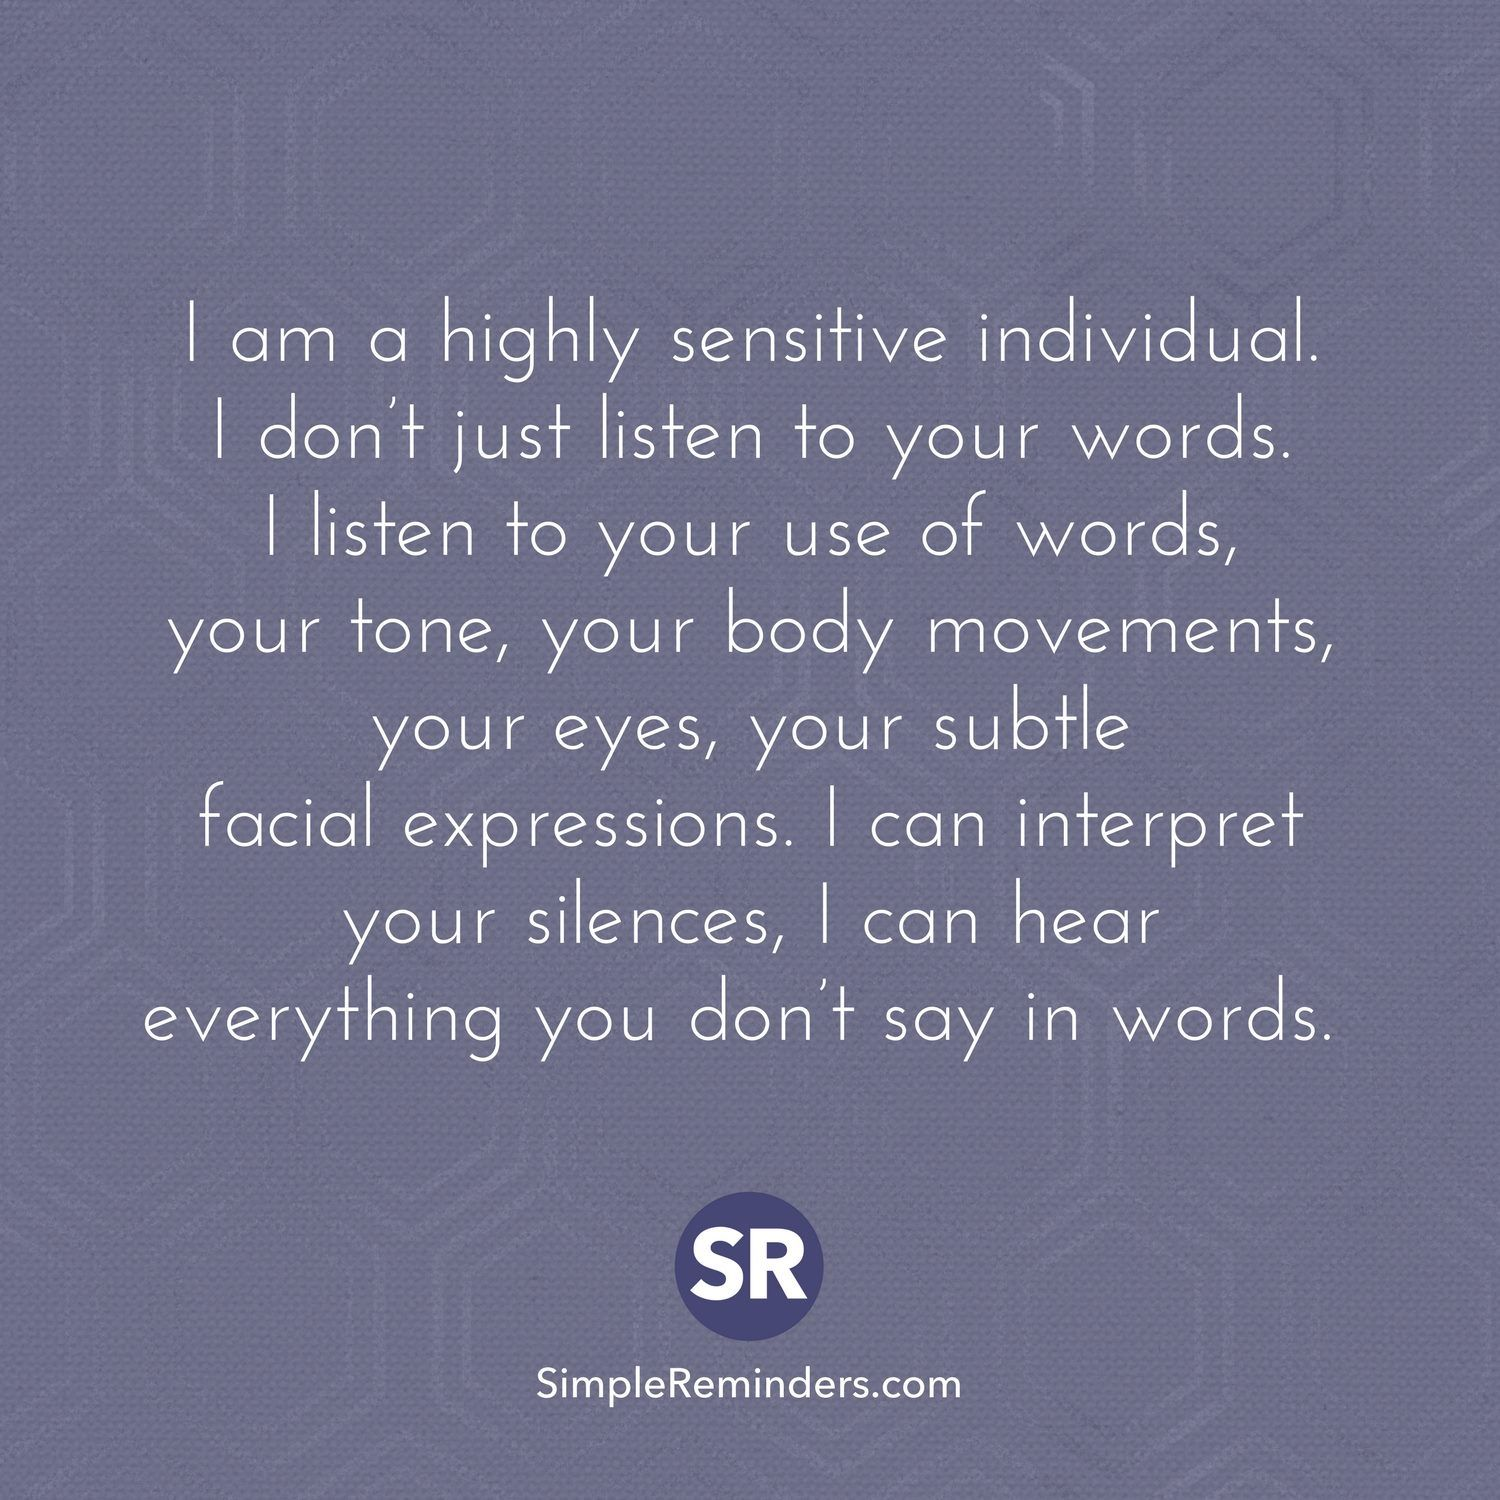 I am a highly sensitive individual. I don't just listen to